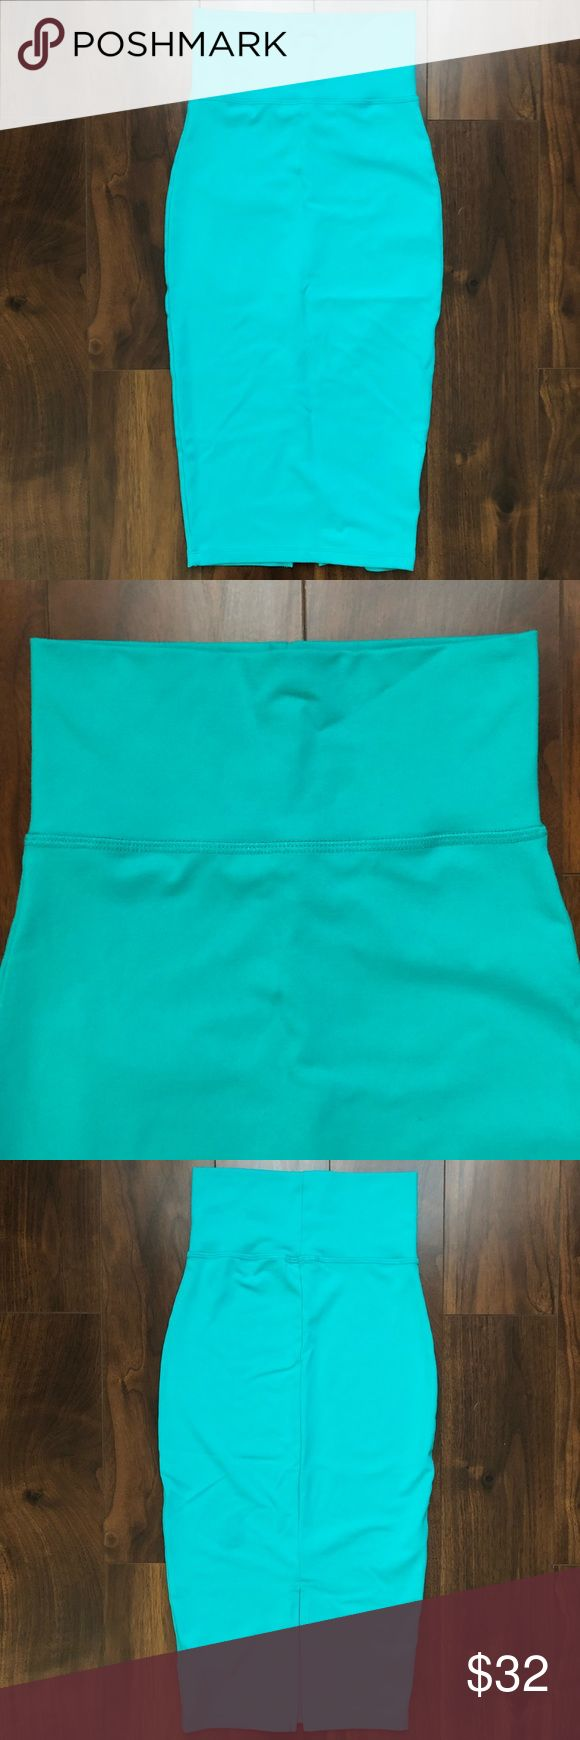 Bebe Aqua High Waisted Midi Skirt XXS • WORN ONCE Worn ONCE for 3 hours, washed cold & laid flat to dry. Literally in brand new condition!! The color is a gorgeous aqua blue. Bought at Bebe. Size XXS with tons of stretch and meant to be worn high-waisted with a tight, sexy fit. Super soft and comfy. Has a slit in the back. Absolutely no flaws or odors. Comes from a smoke-free home. I'm normally an XS or S in stretchy skirts and this fits me perfect (ask ANY questions! Will post measurements…